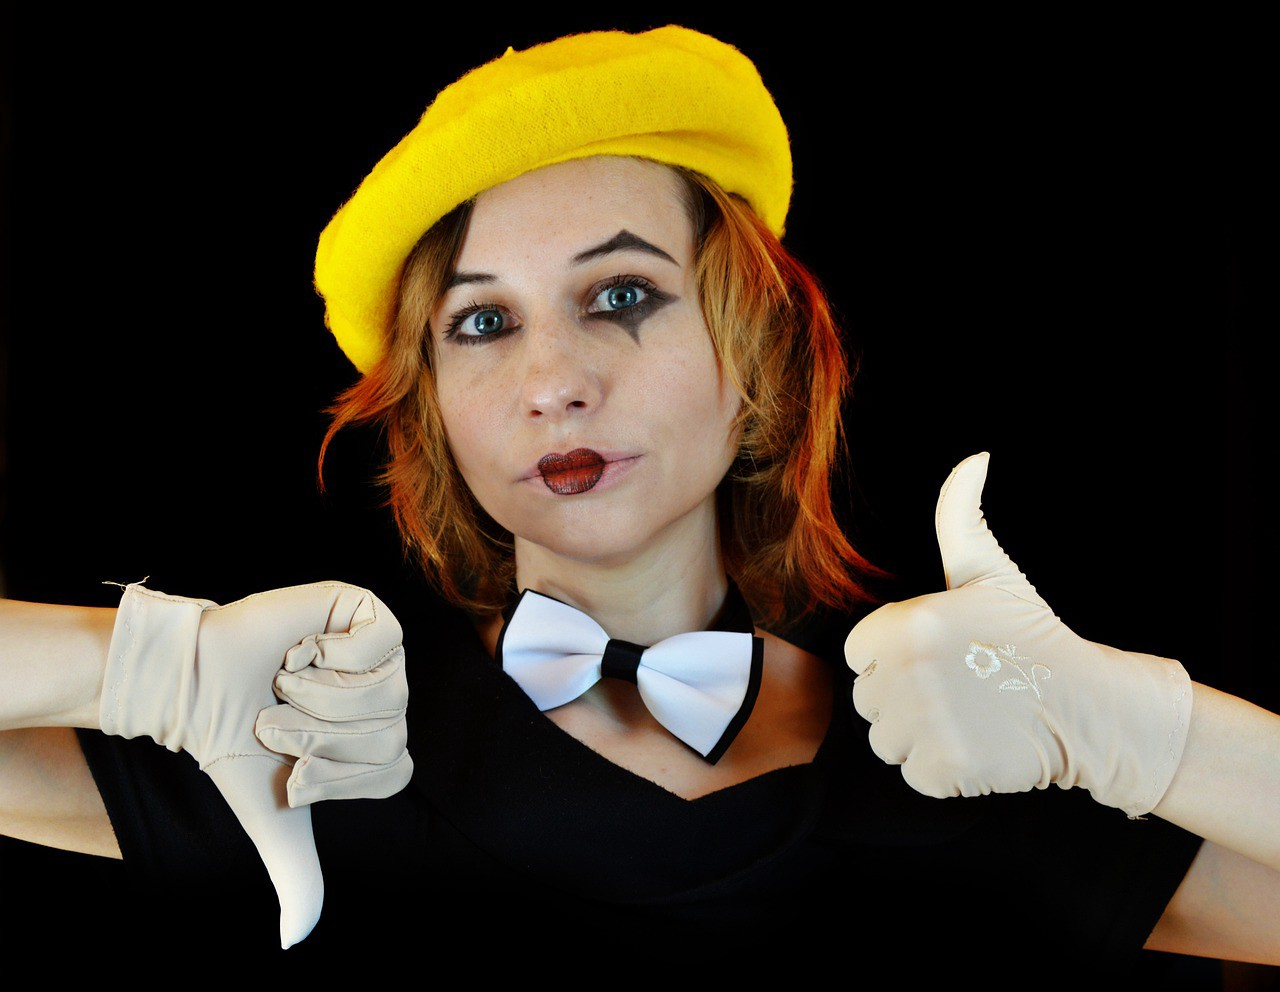 A mime woman in white gloves with thumbs up and thumbs down.